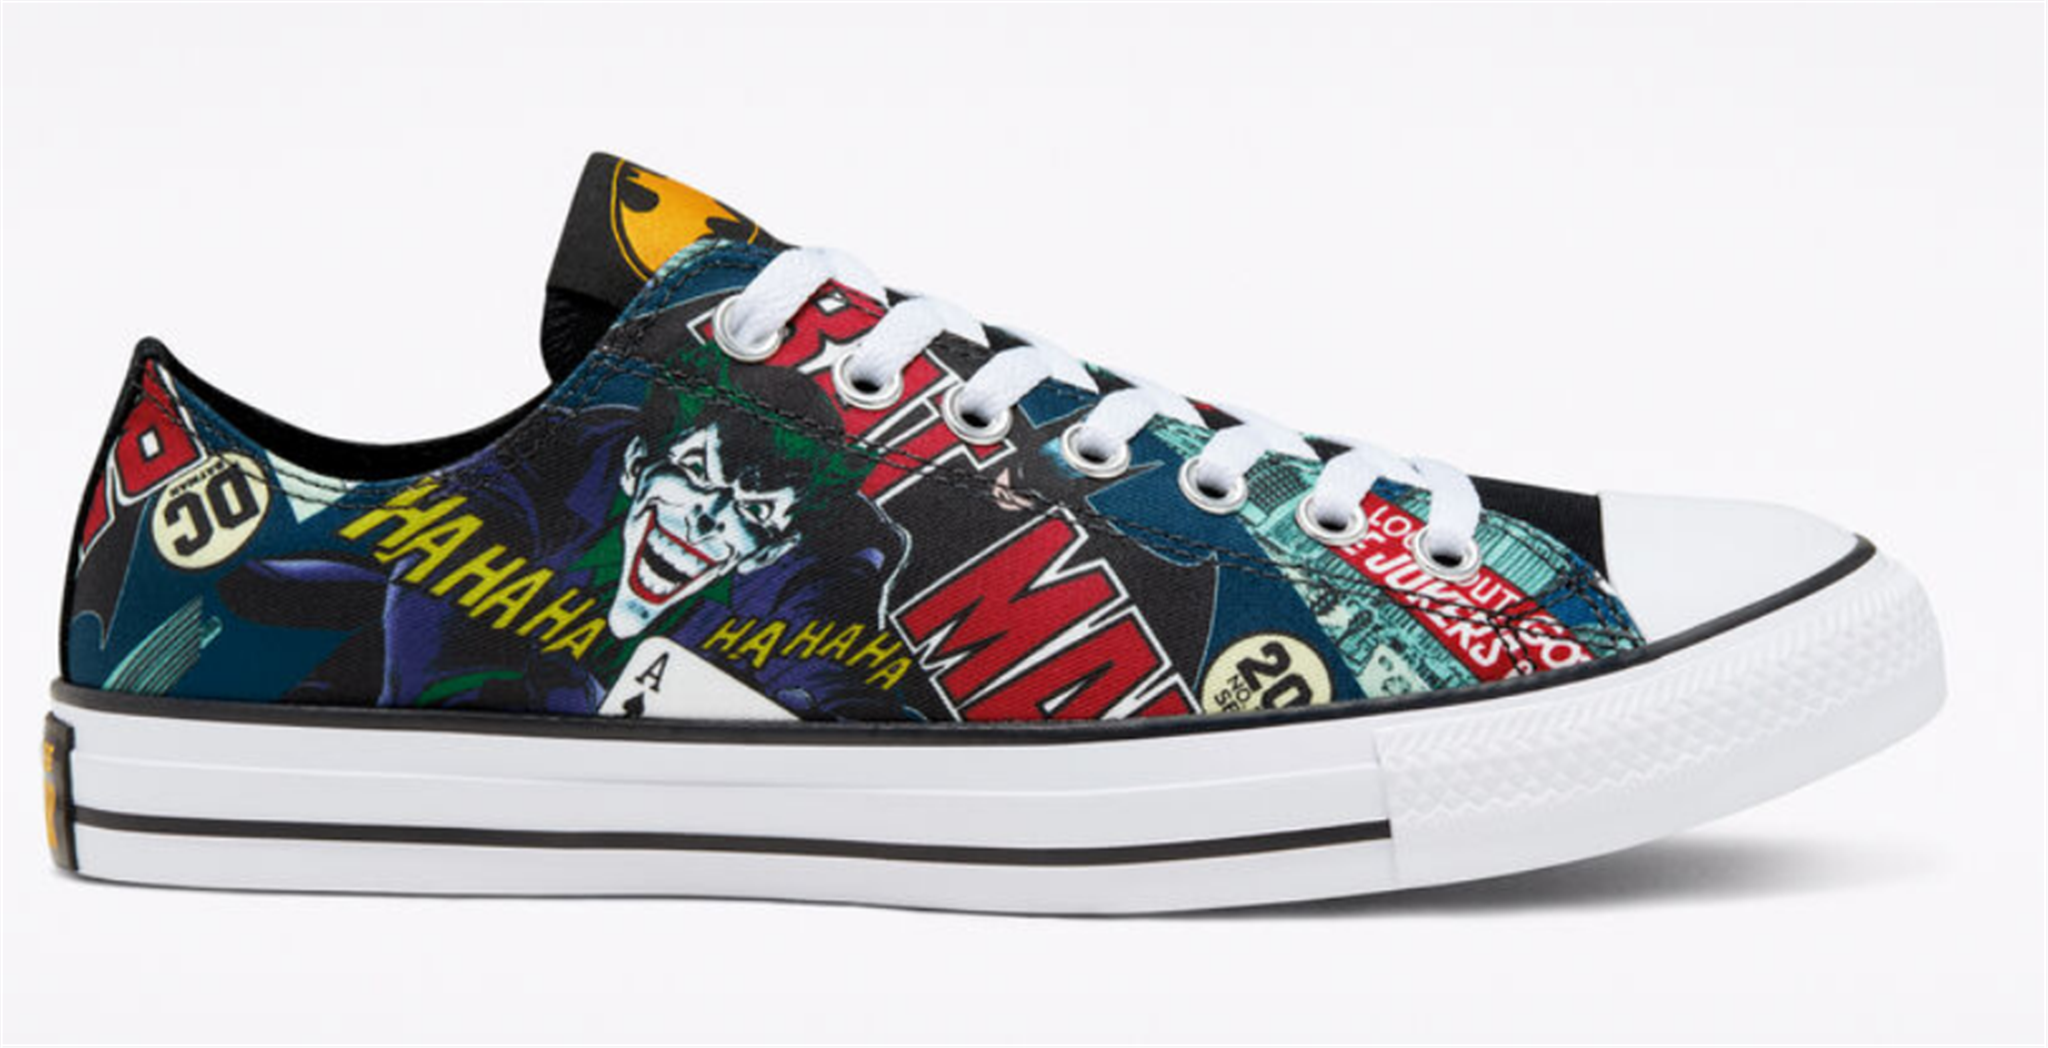 Batman Chuck Taylor Converse Shoes For The Family 50% Off + Free Shipping!